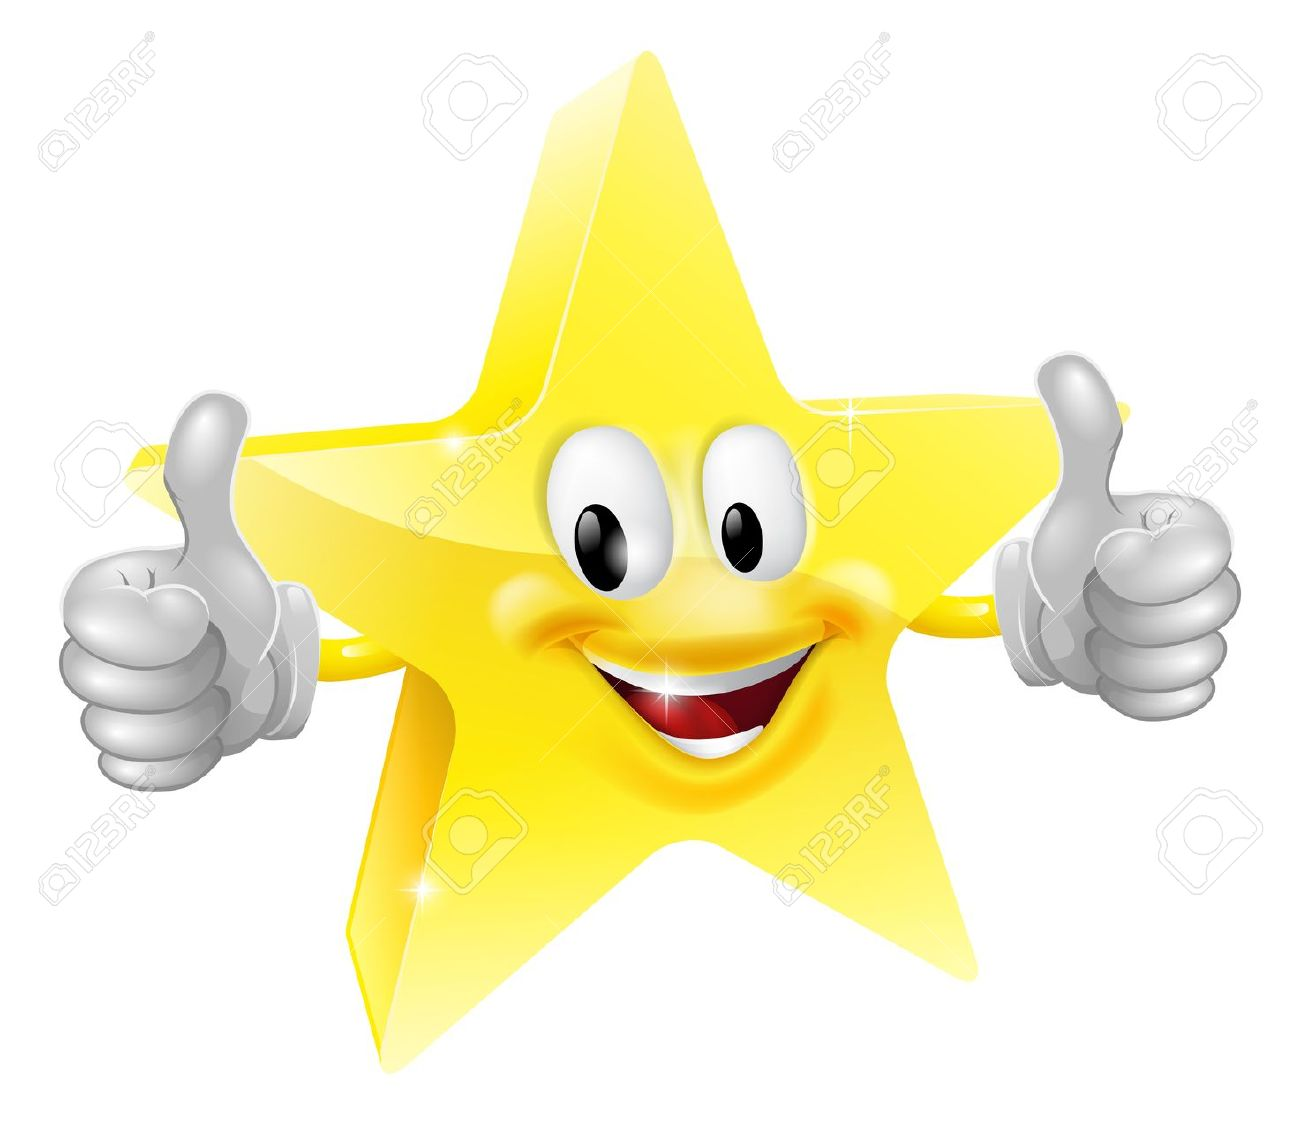 Double thumbs up clipart svg stock A Happy Cartoon Star Man Giving A Double Thumbs Up Royalty Free ... svg stock